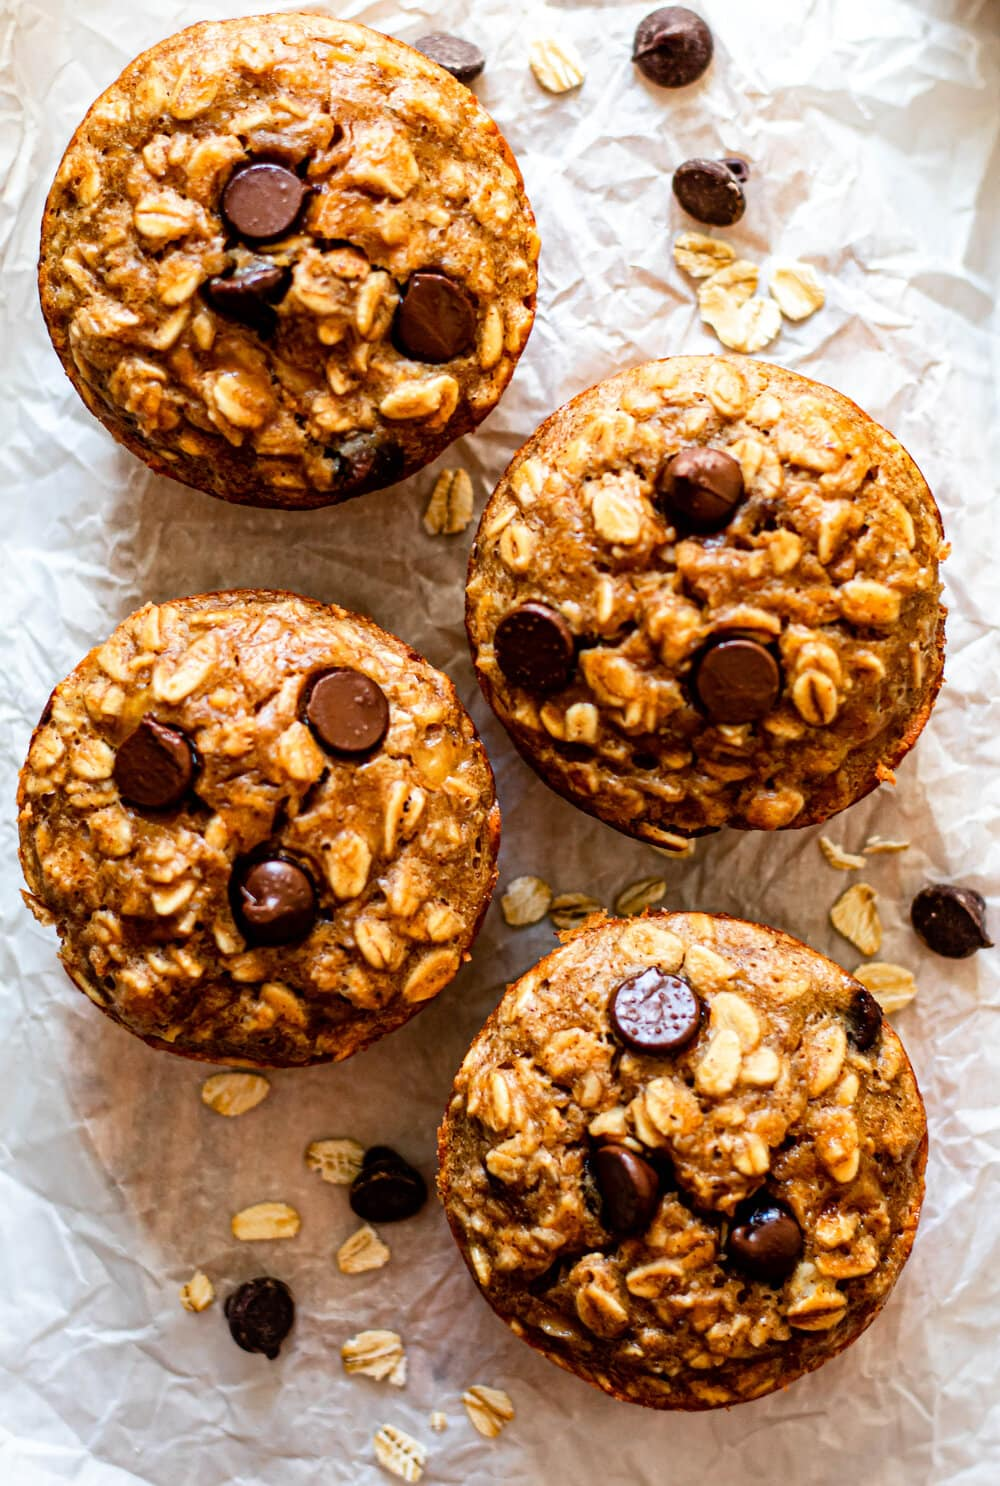 Four Peanut Butter Banana Baked Oatmeal Cups on white parchment paper with chocolate chips and oats scattered around